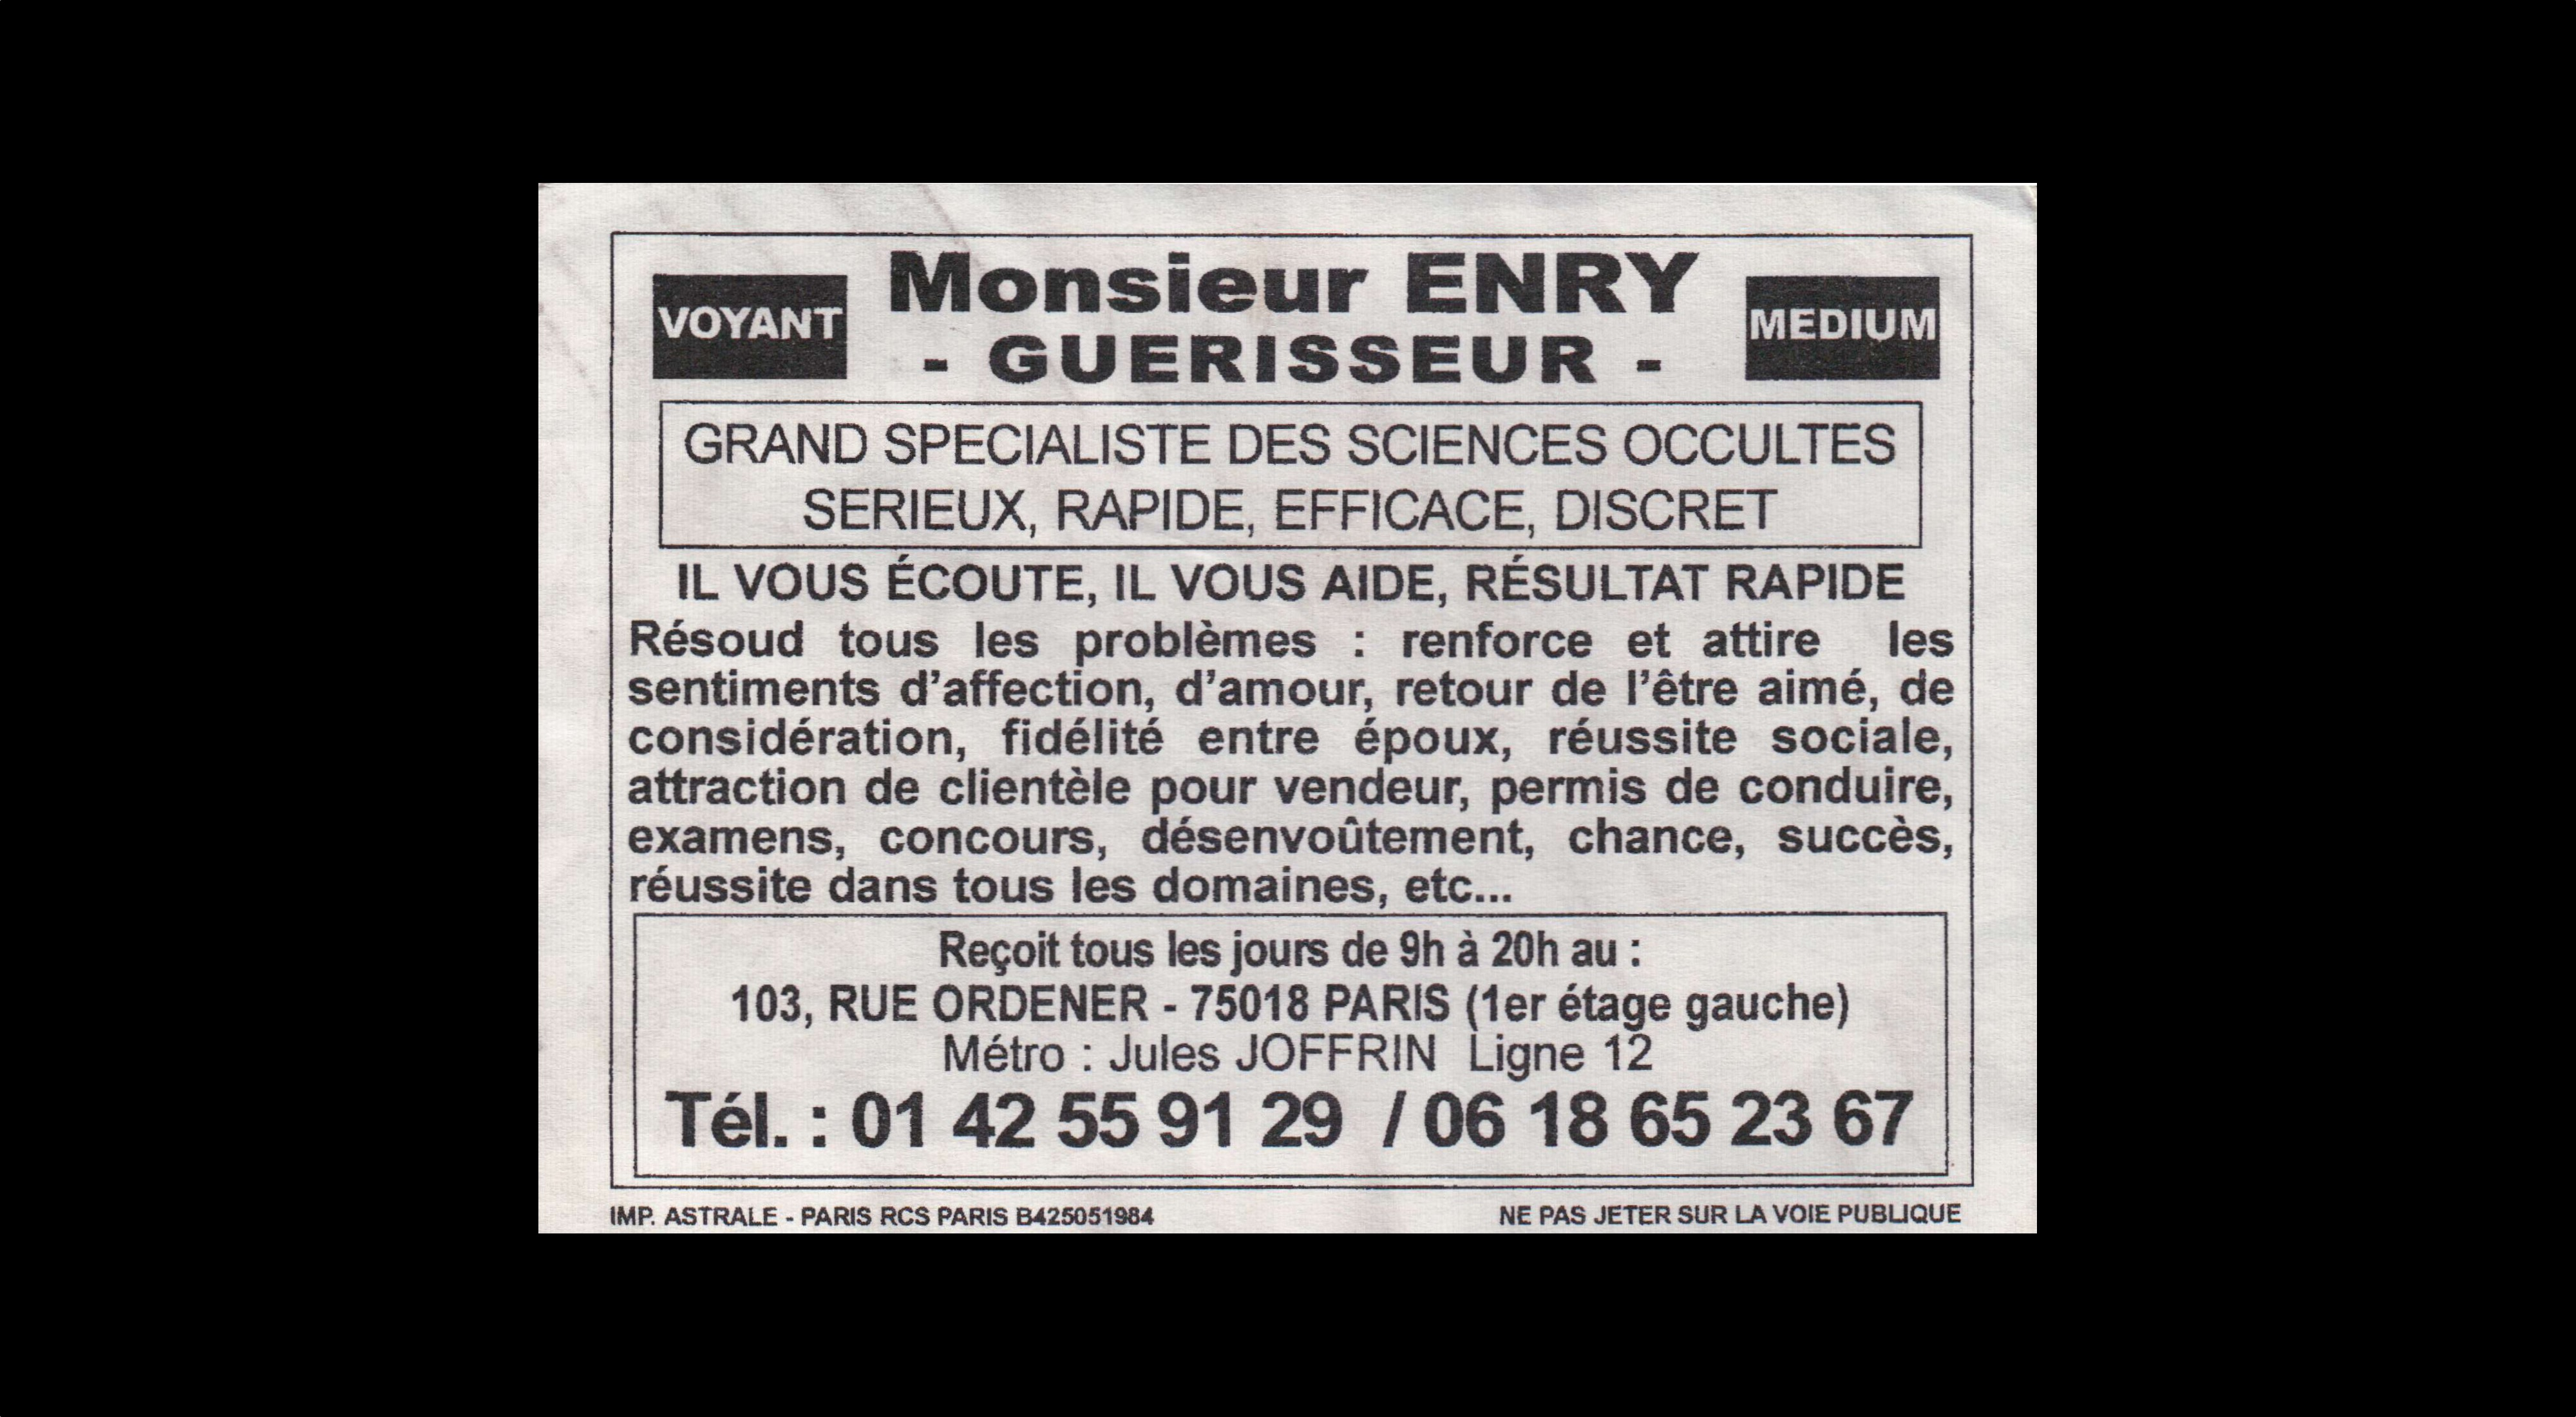 card of Monsieur Enry